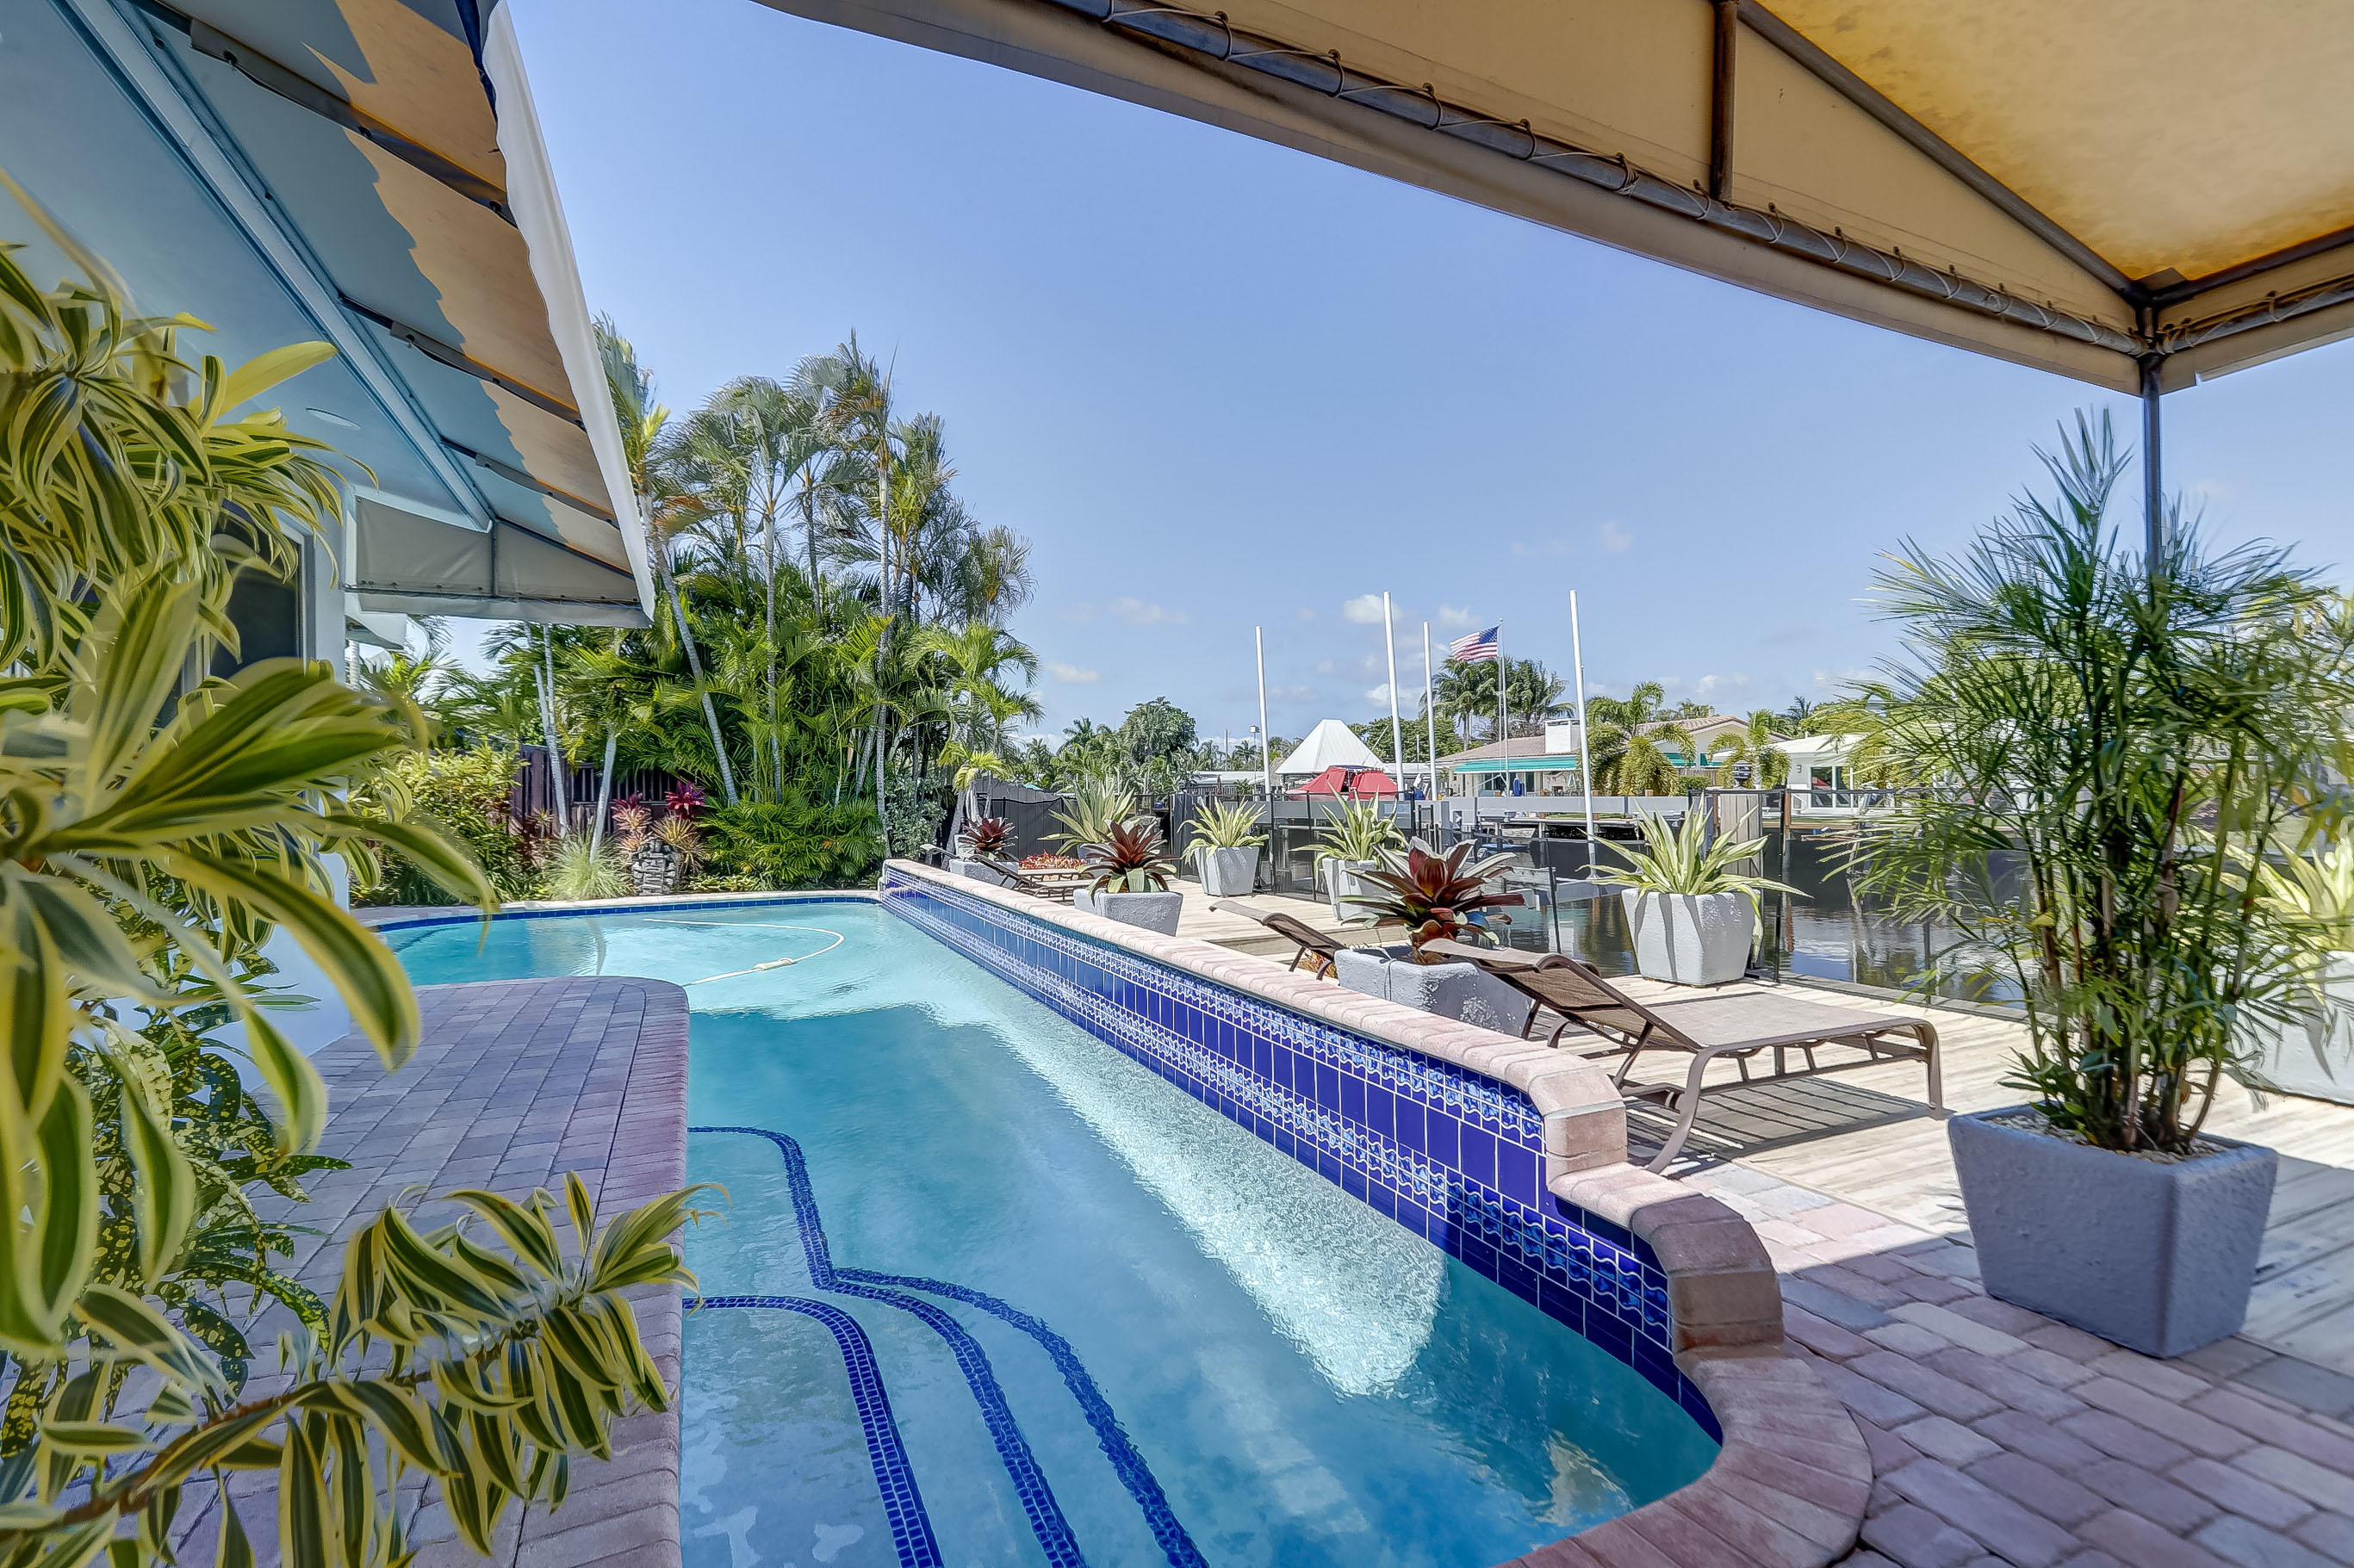 Or, just relax in the Salt Water Pool